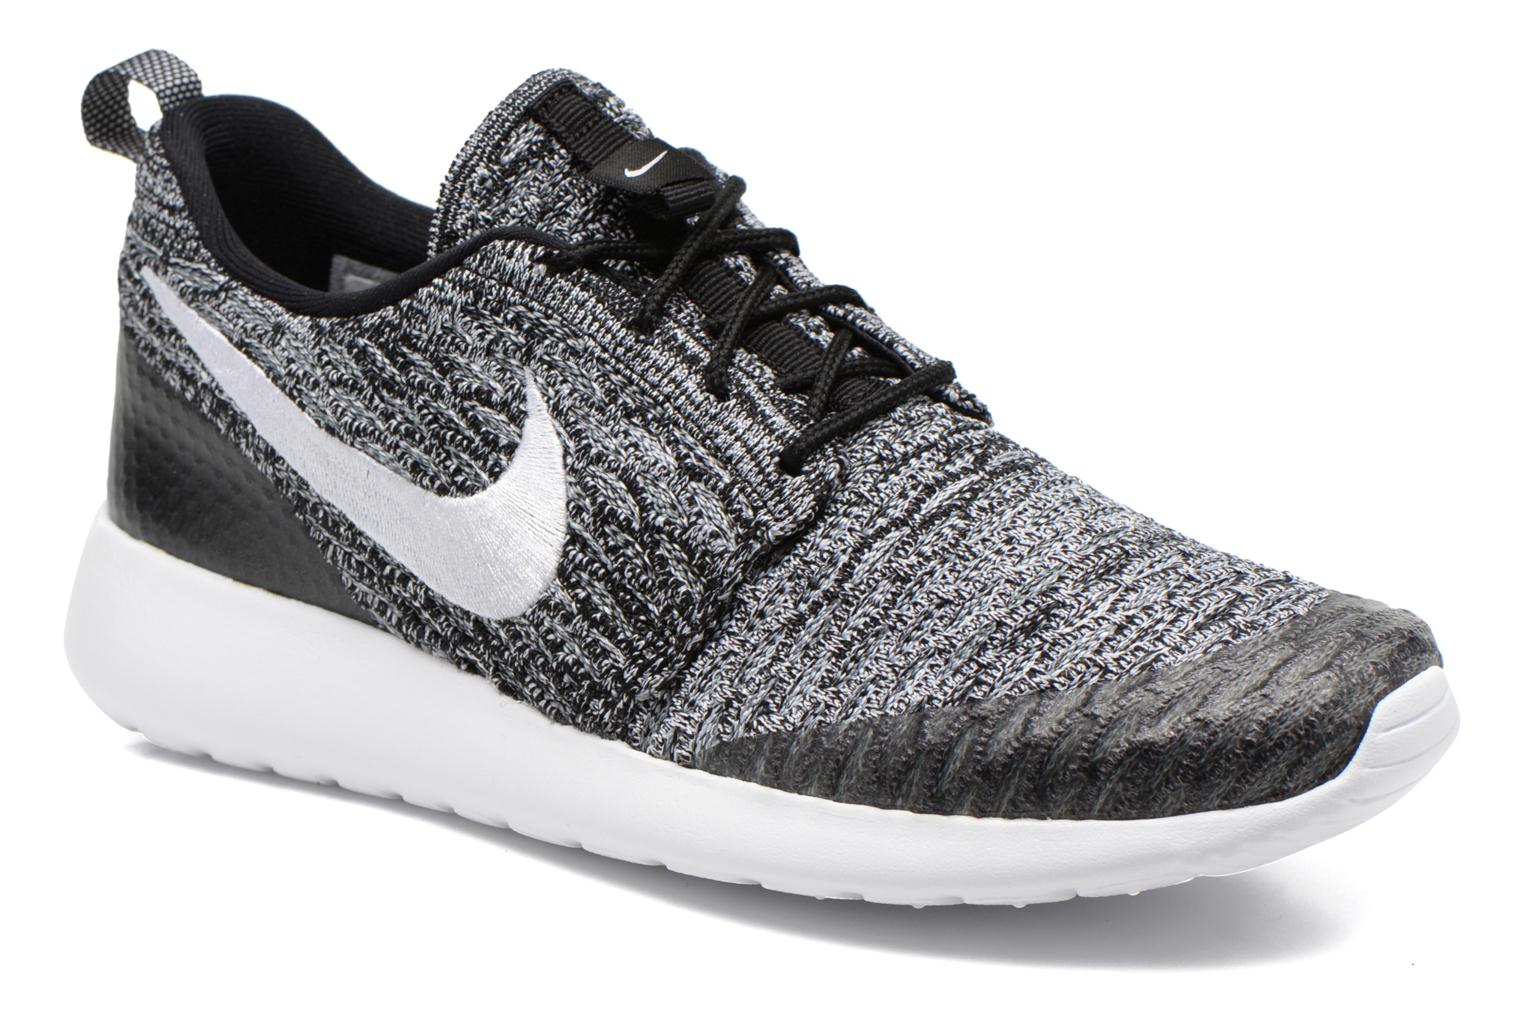 Wmns Roshe One Flyknit Black/White-Cool Grey